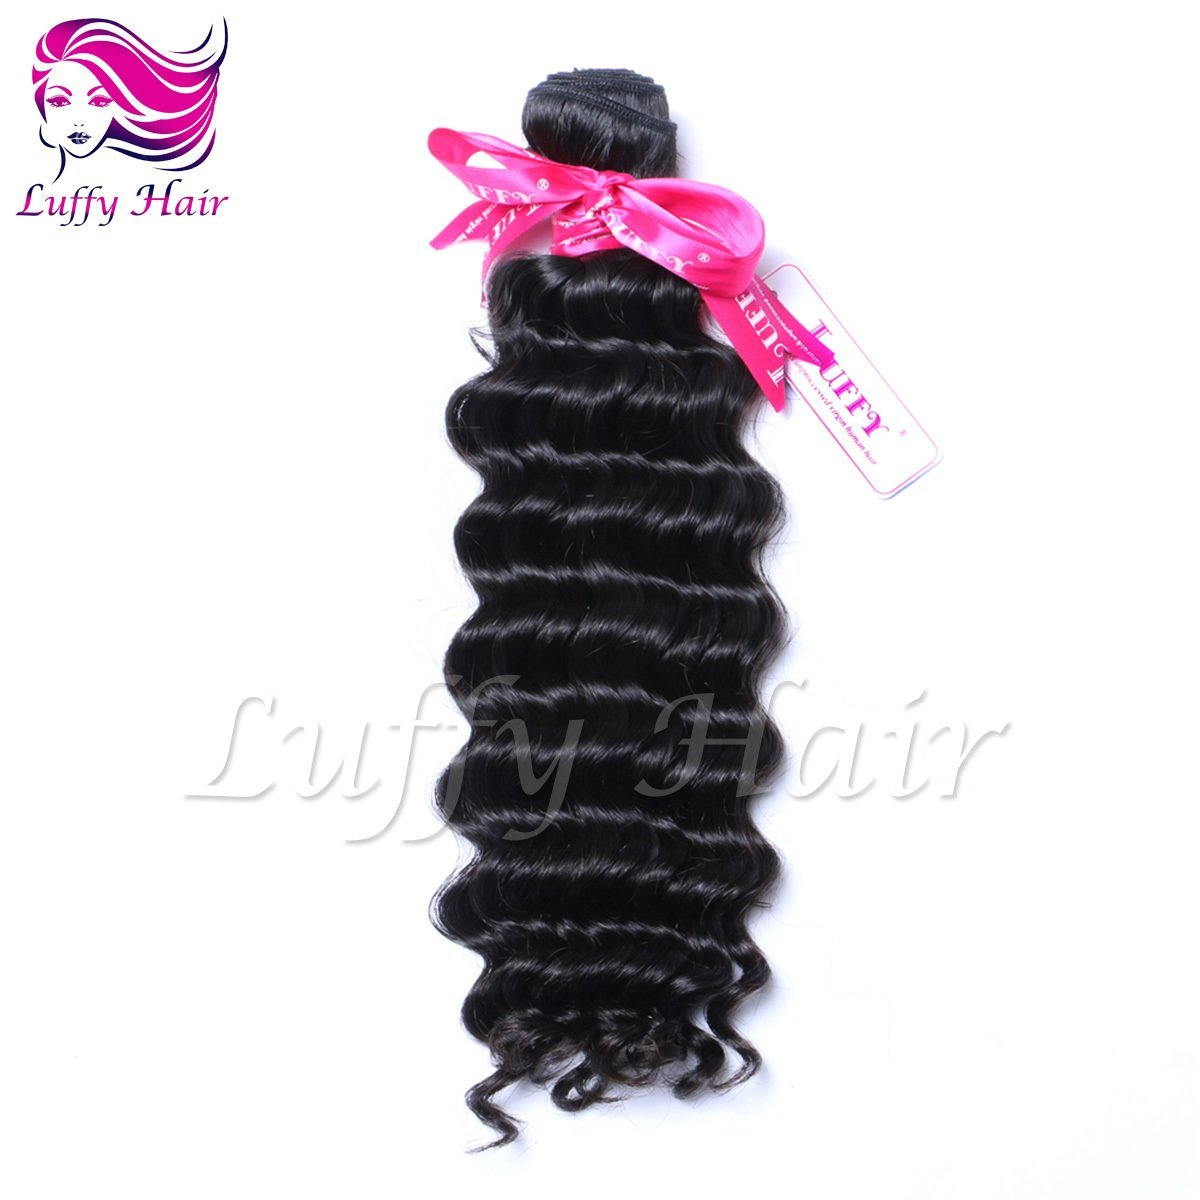 10A Virgin Human Hair Deep Wave Hair Bundle - KEL002